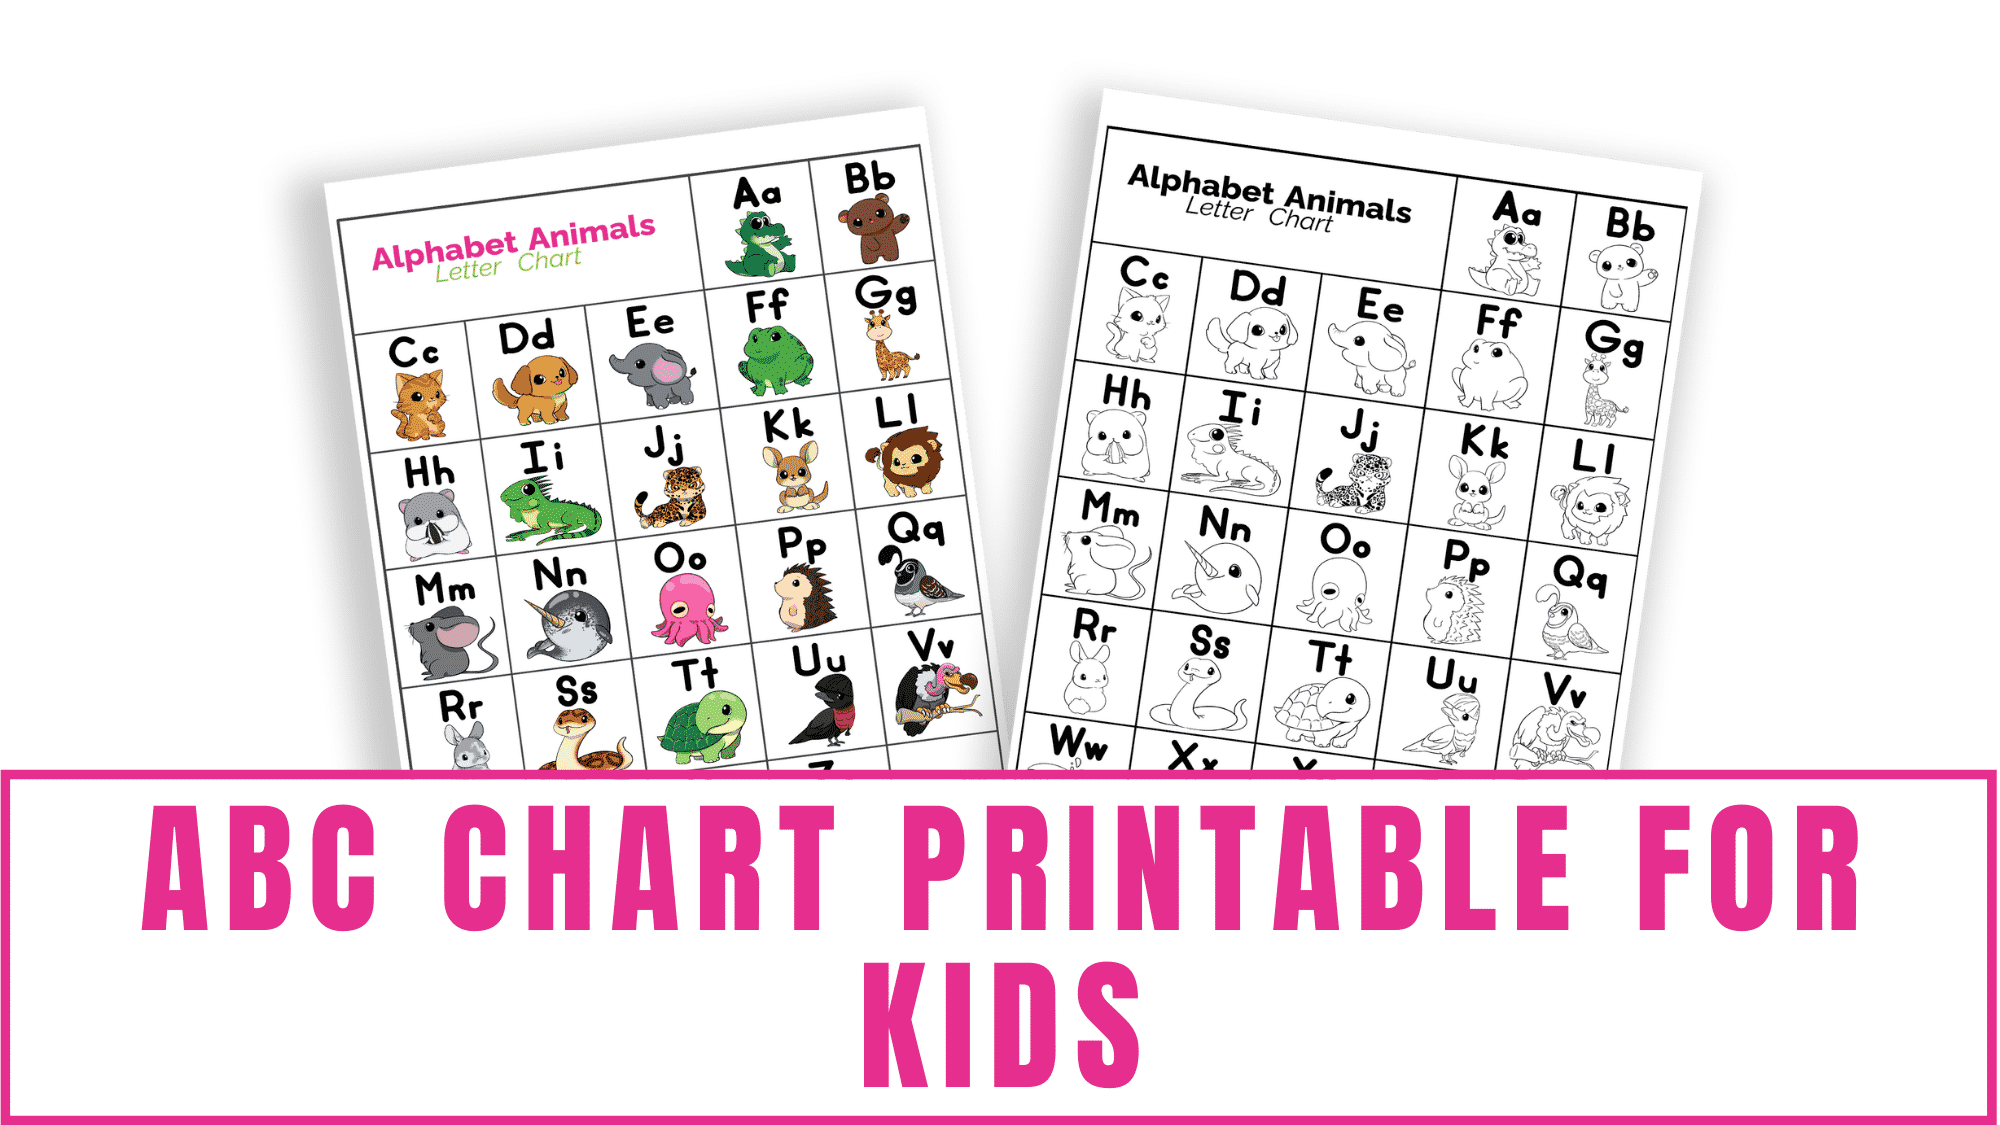 Do you have a kid learning the alphabet? Use this ABC chart printable for kids to help them with letter tracing, letter recognition, letter sounds, and to learn words that start with certain letters.